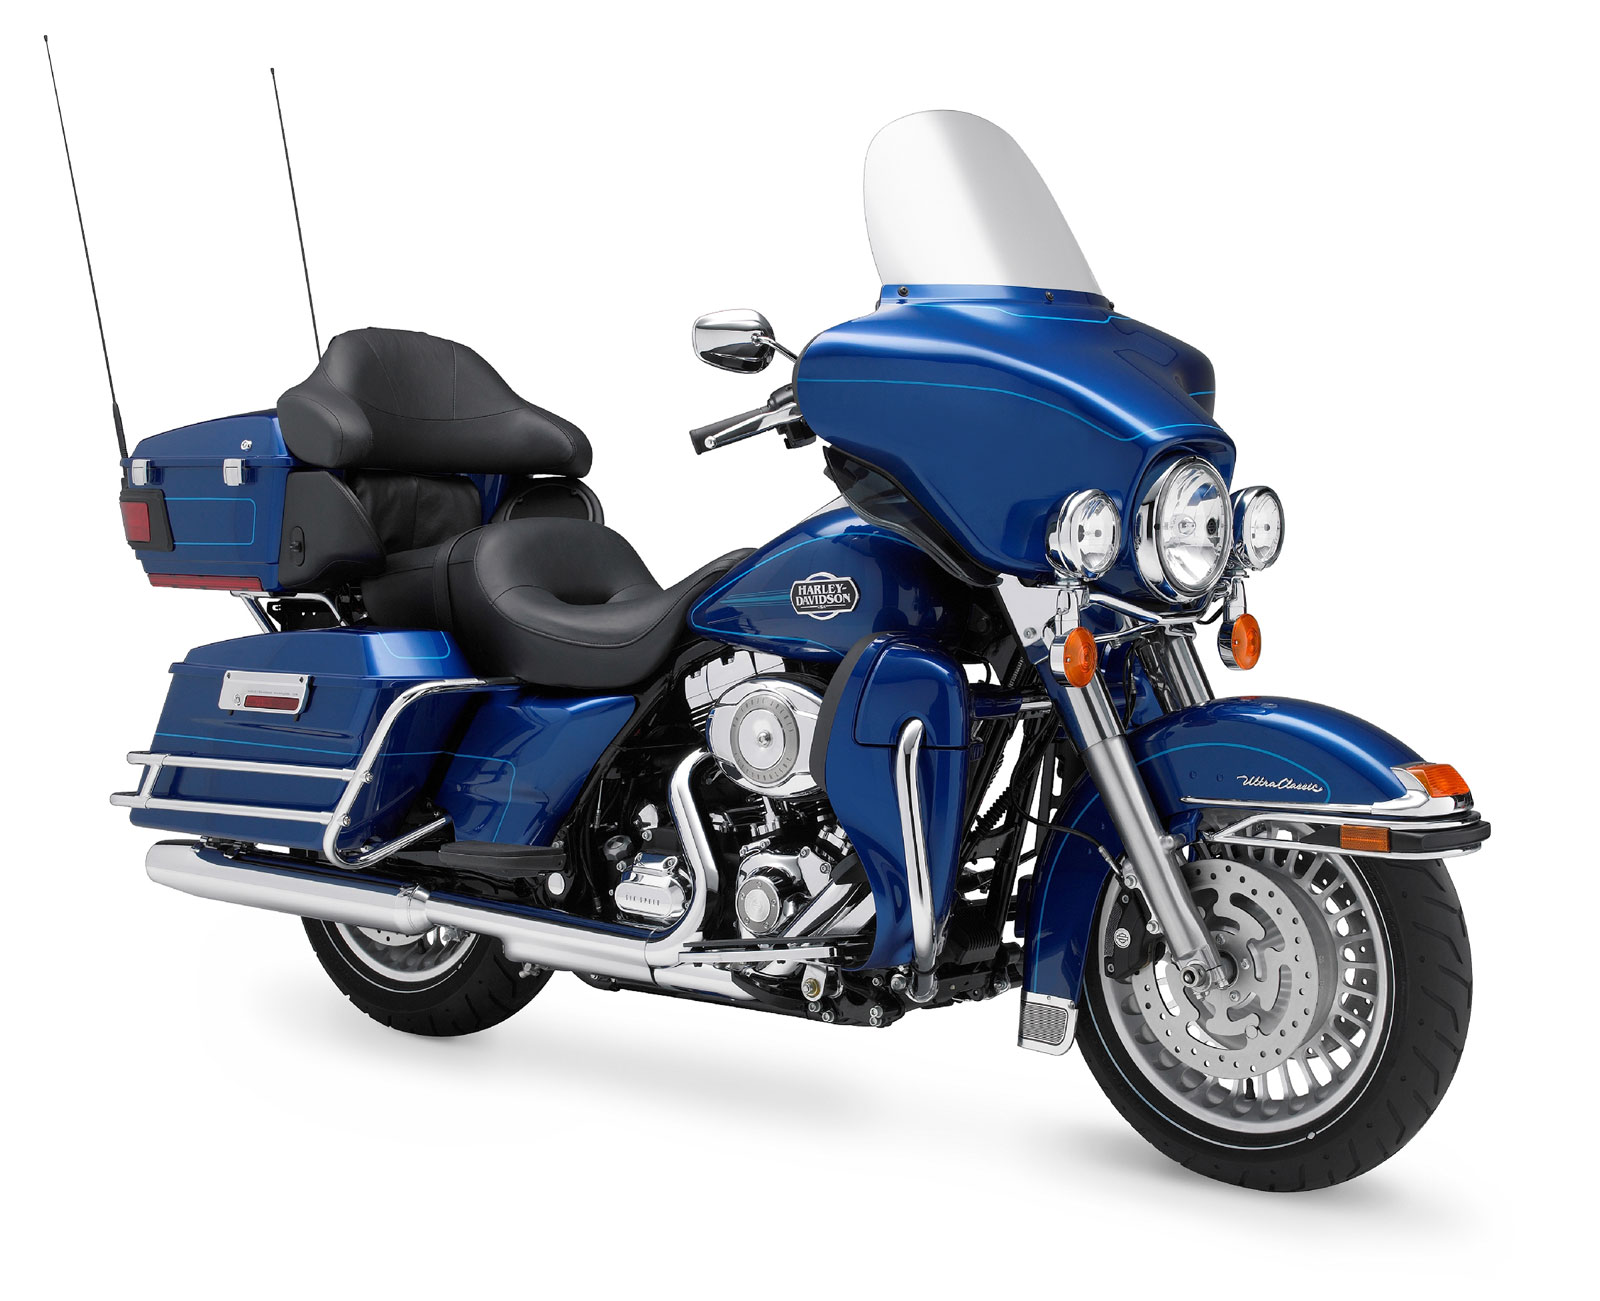 2009 harley davidson flhtcu ultra classic electra glide. Black Bedroom Furniture Sets. Home Design Ideas